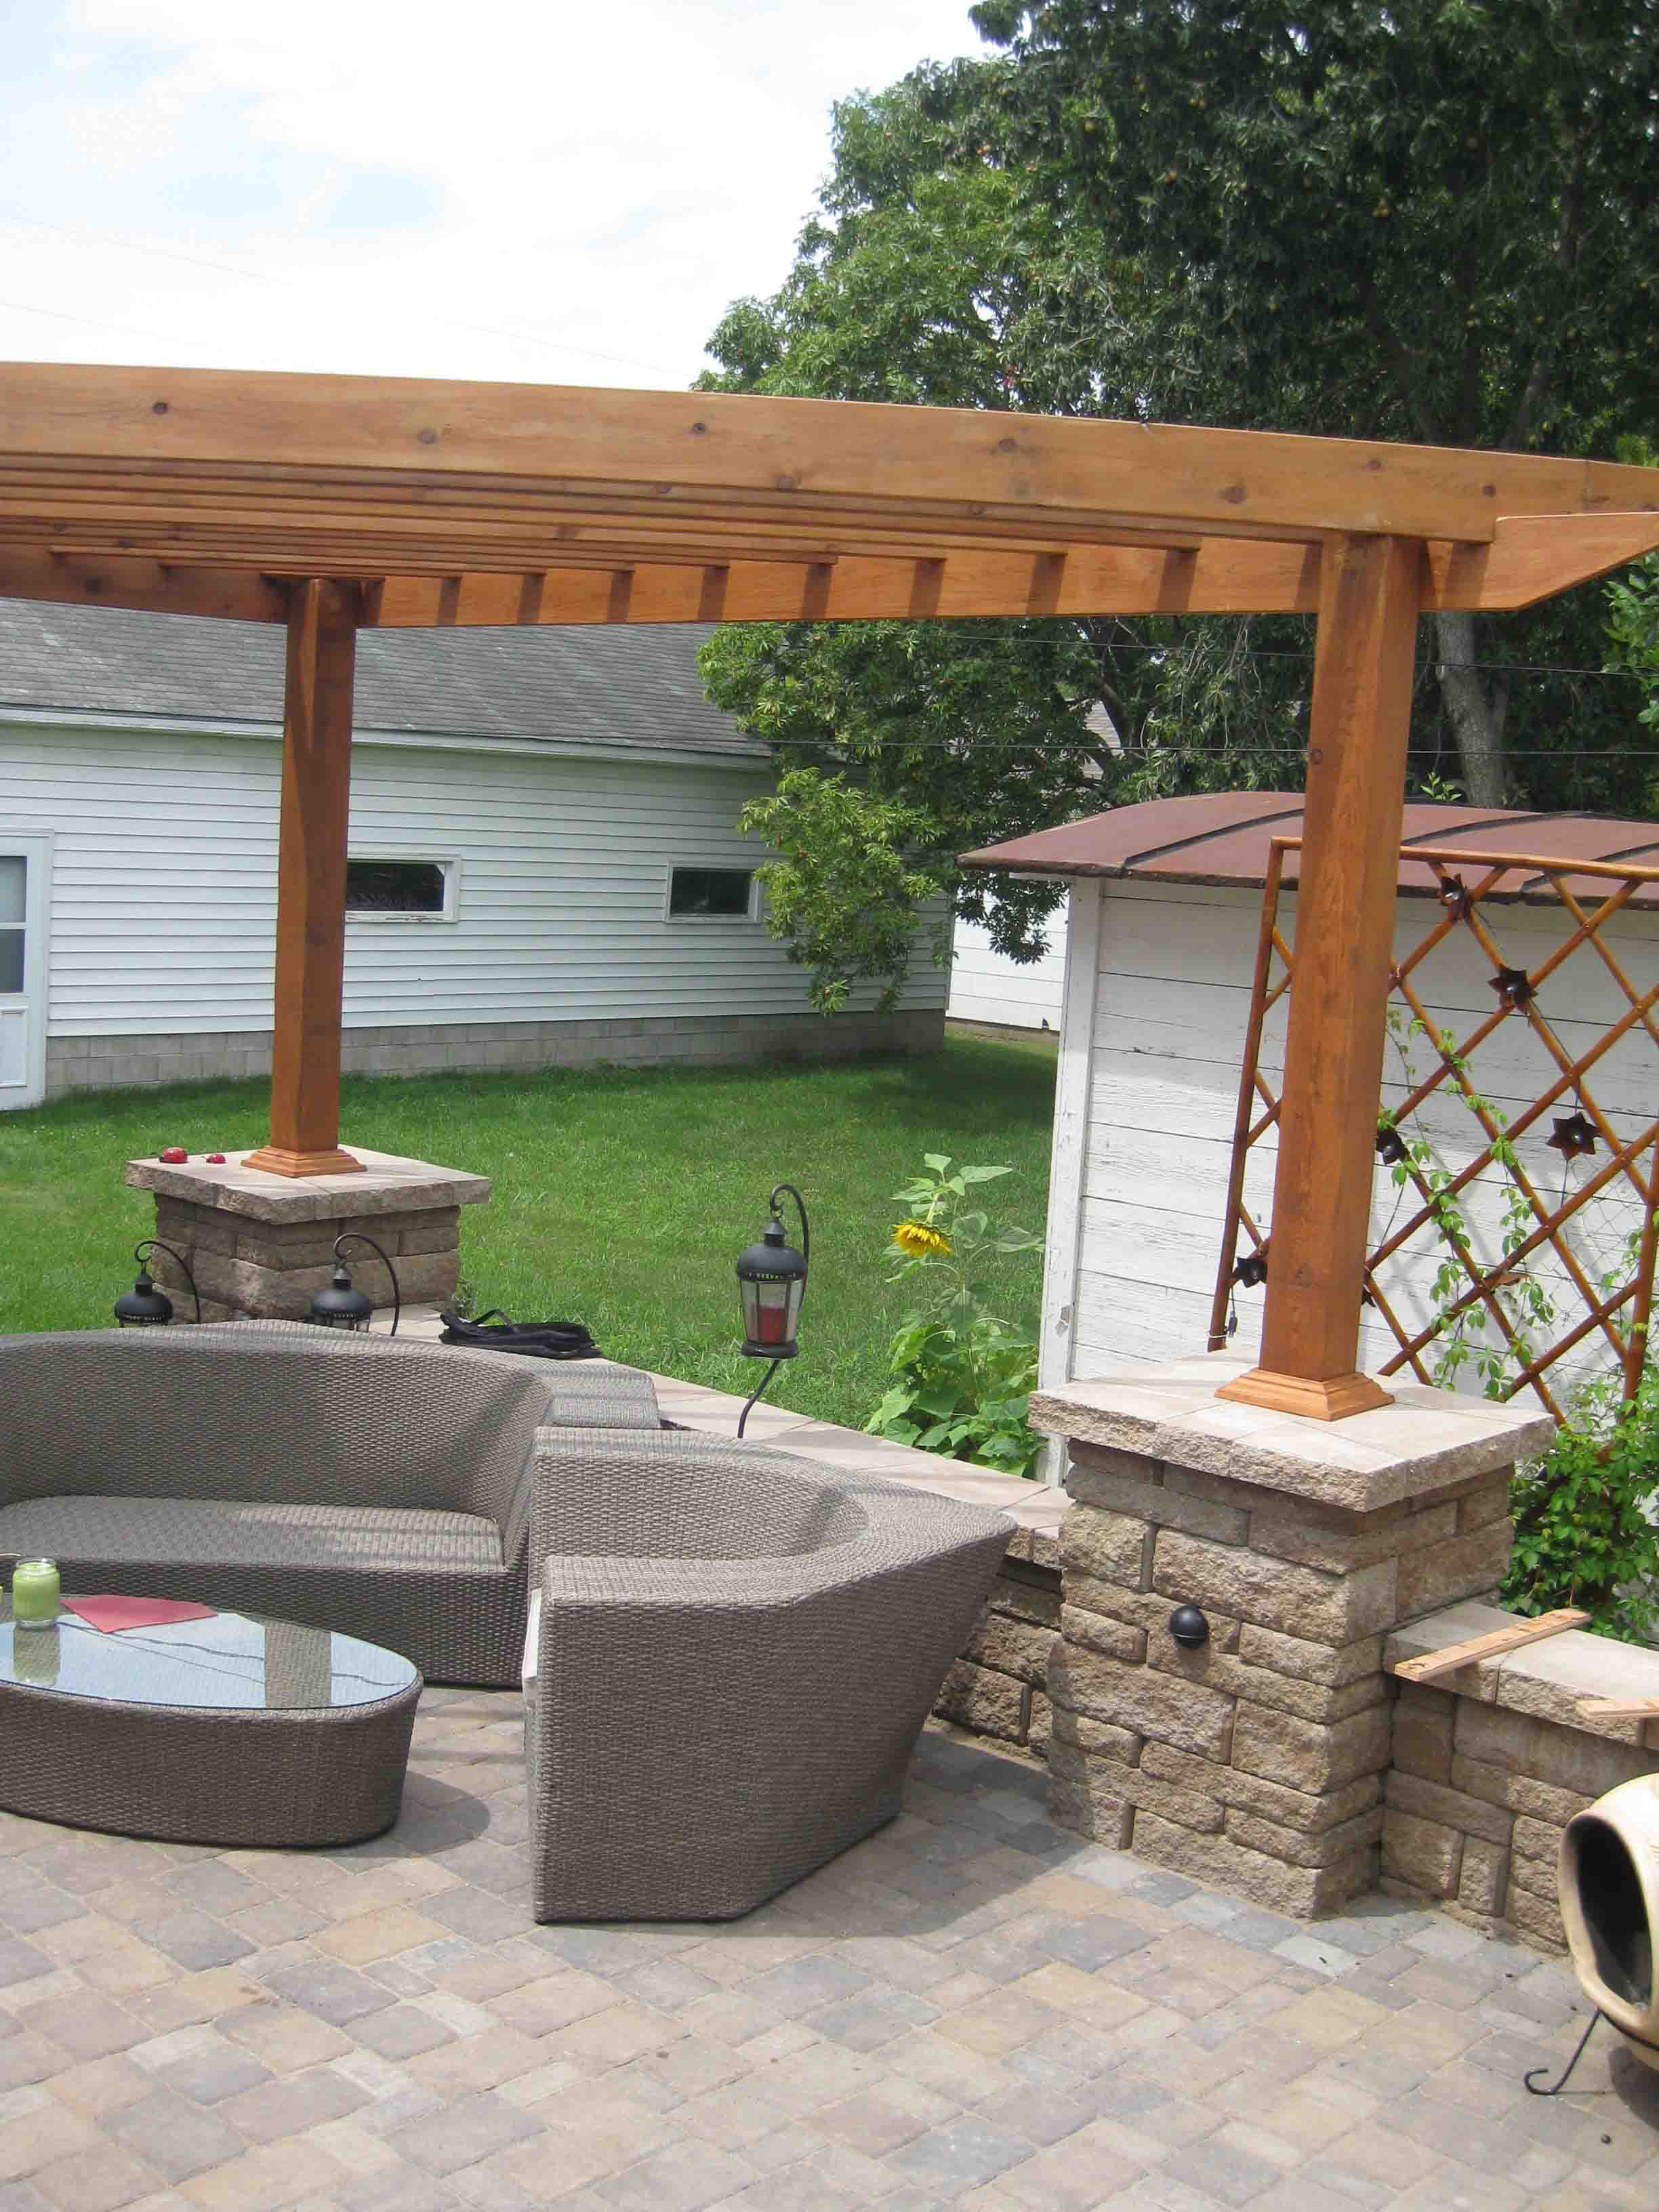 Landscaping Ideas: Pergolas Landscaping Ideas: Pergolas